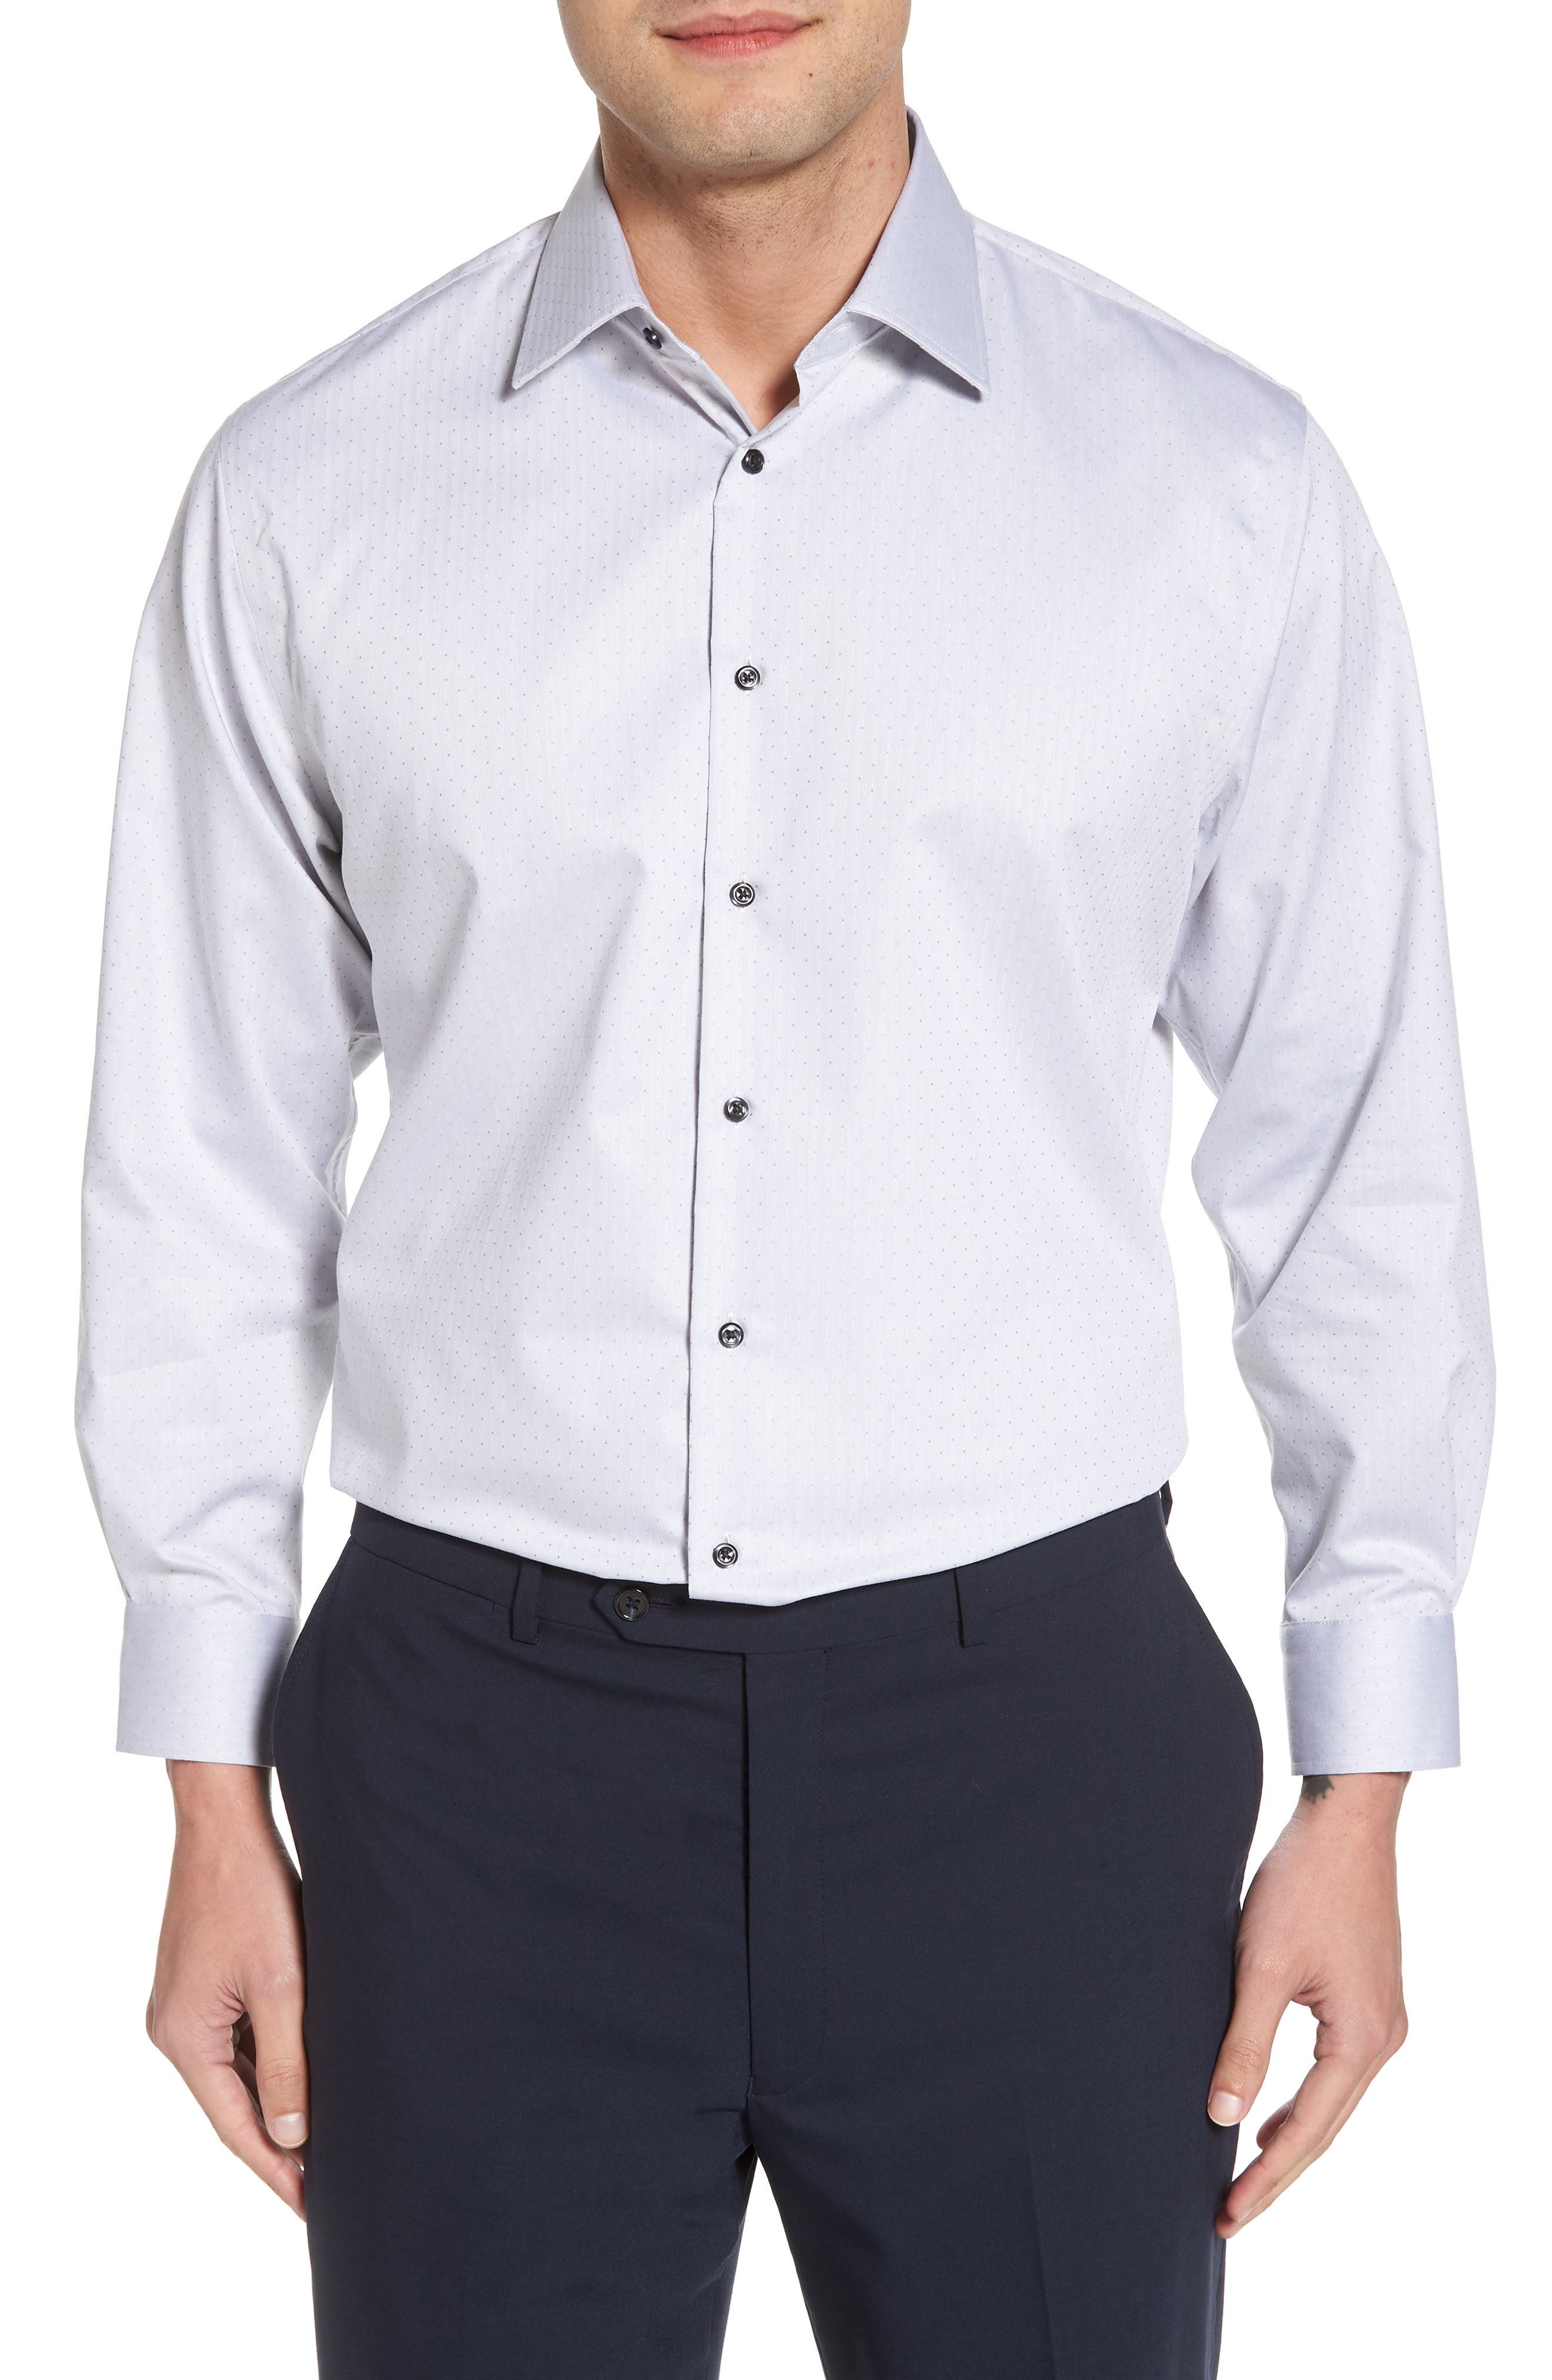 Alternate Image 1 Selected - Nordstrom Men's Shop Traditional Fit Non-Iron Dress Shirt